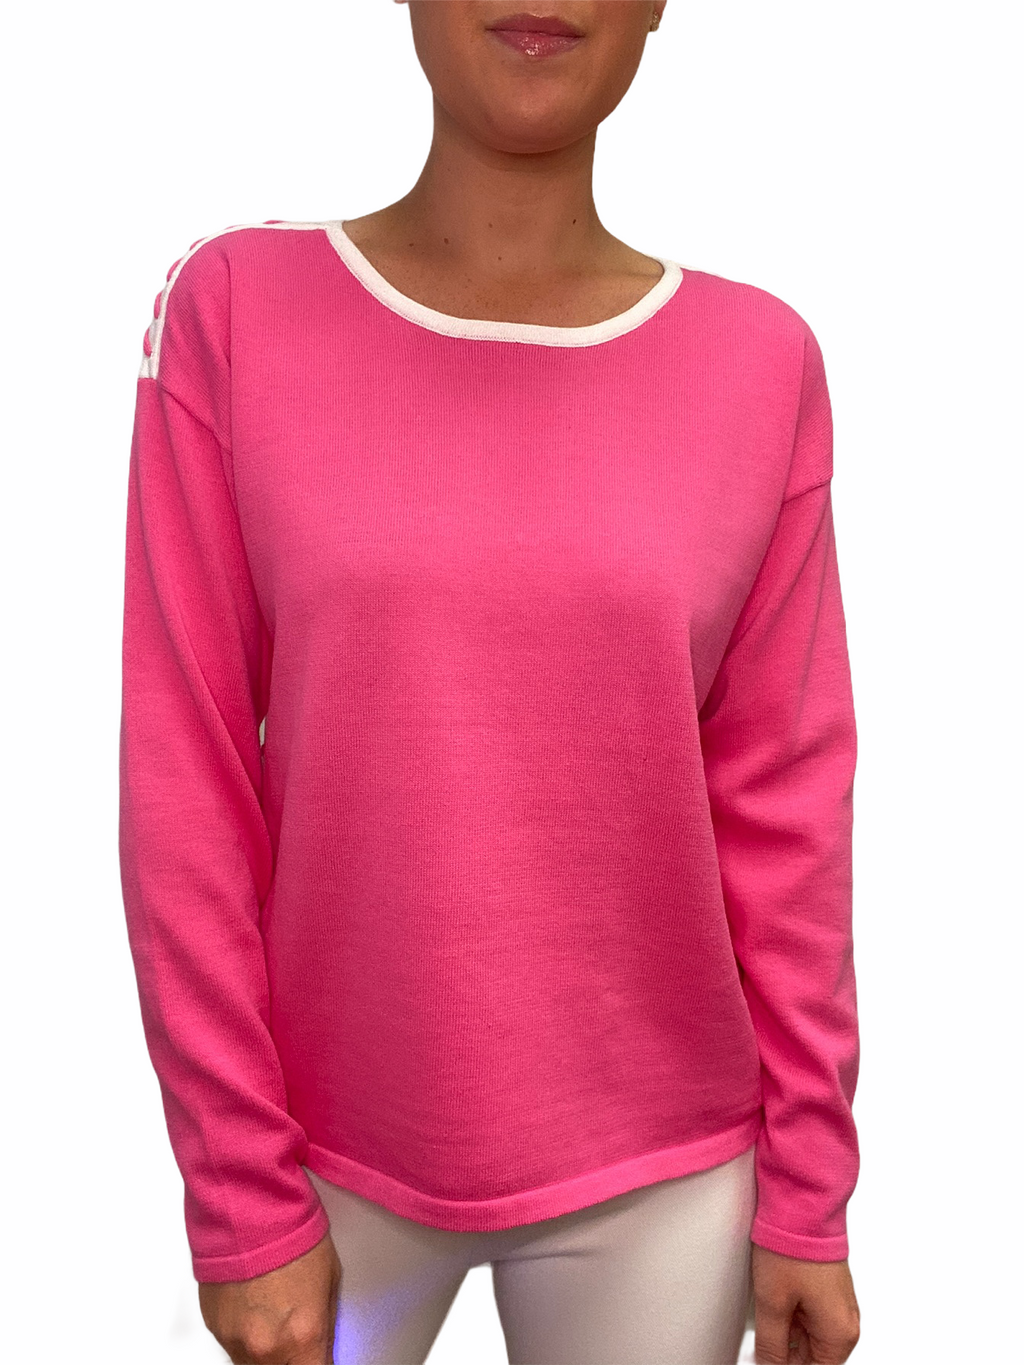 Pink Whip Stitch Sweater